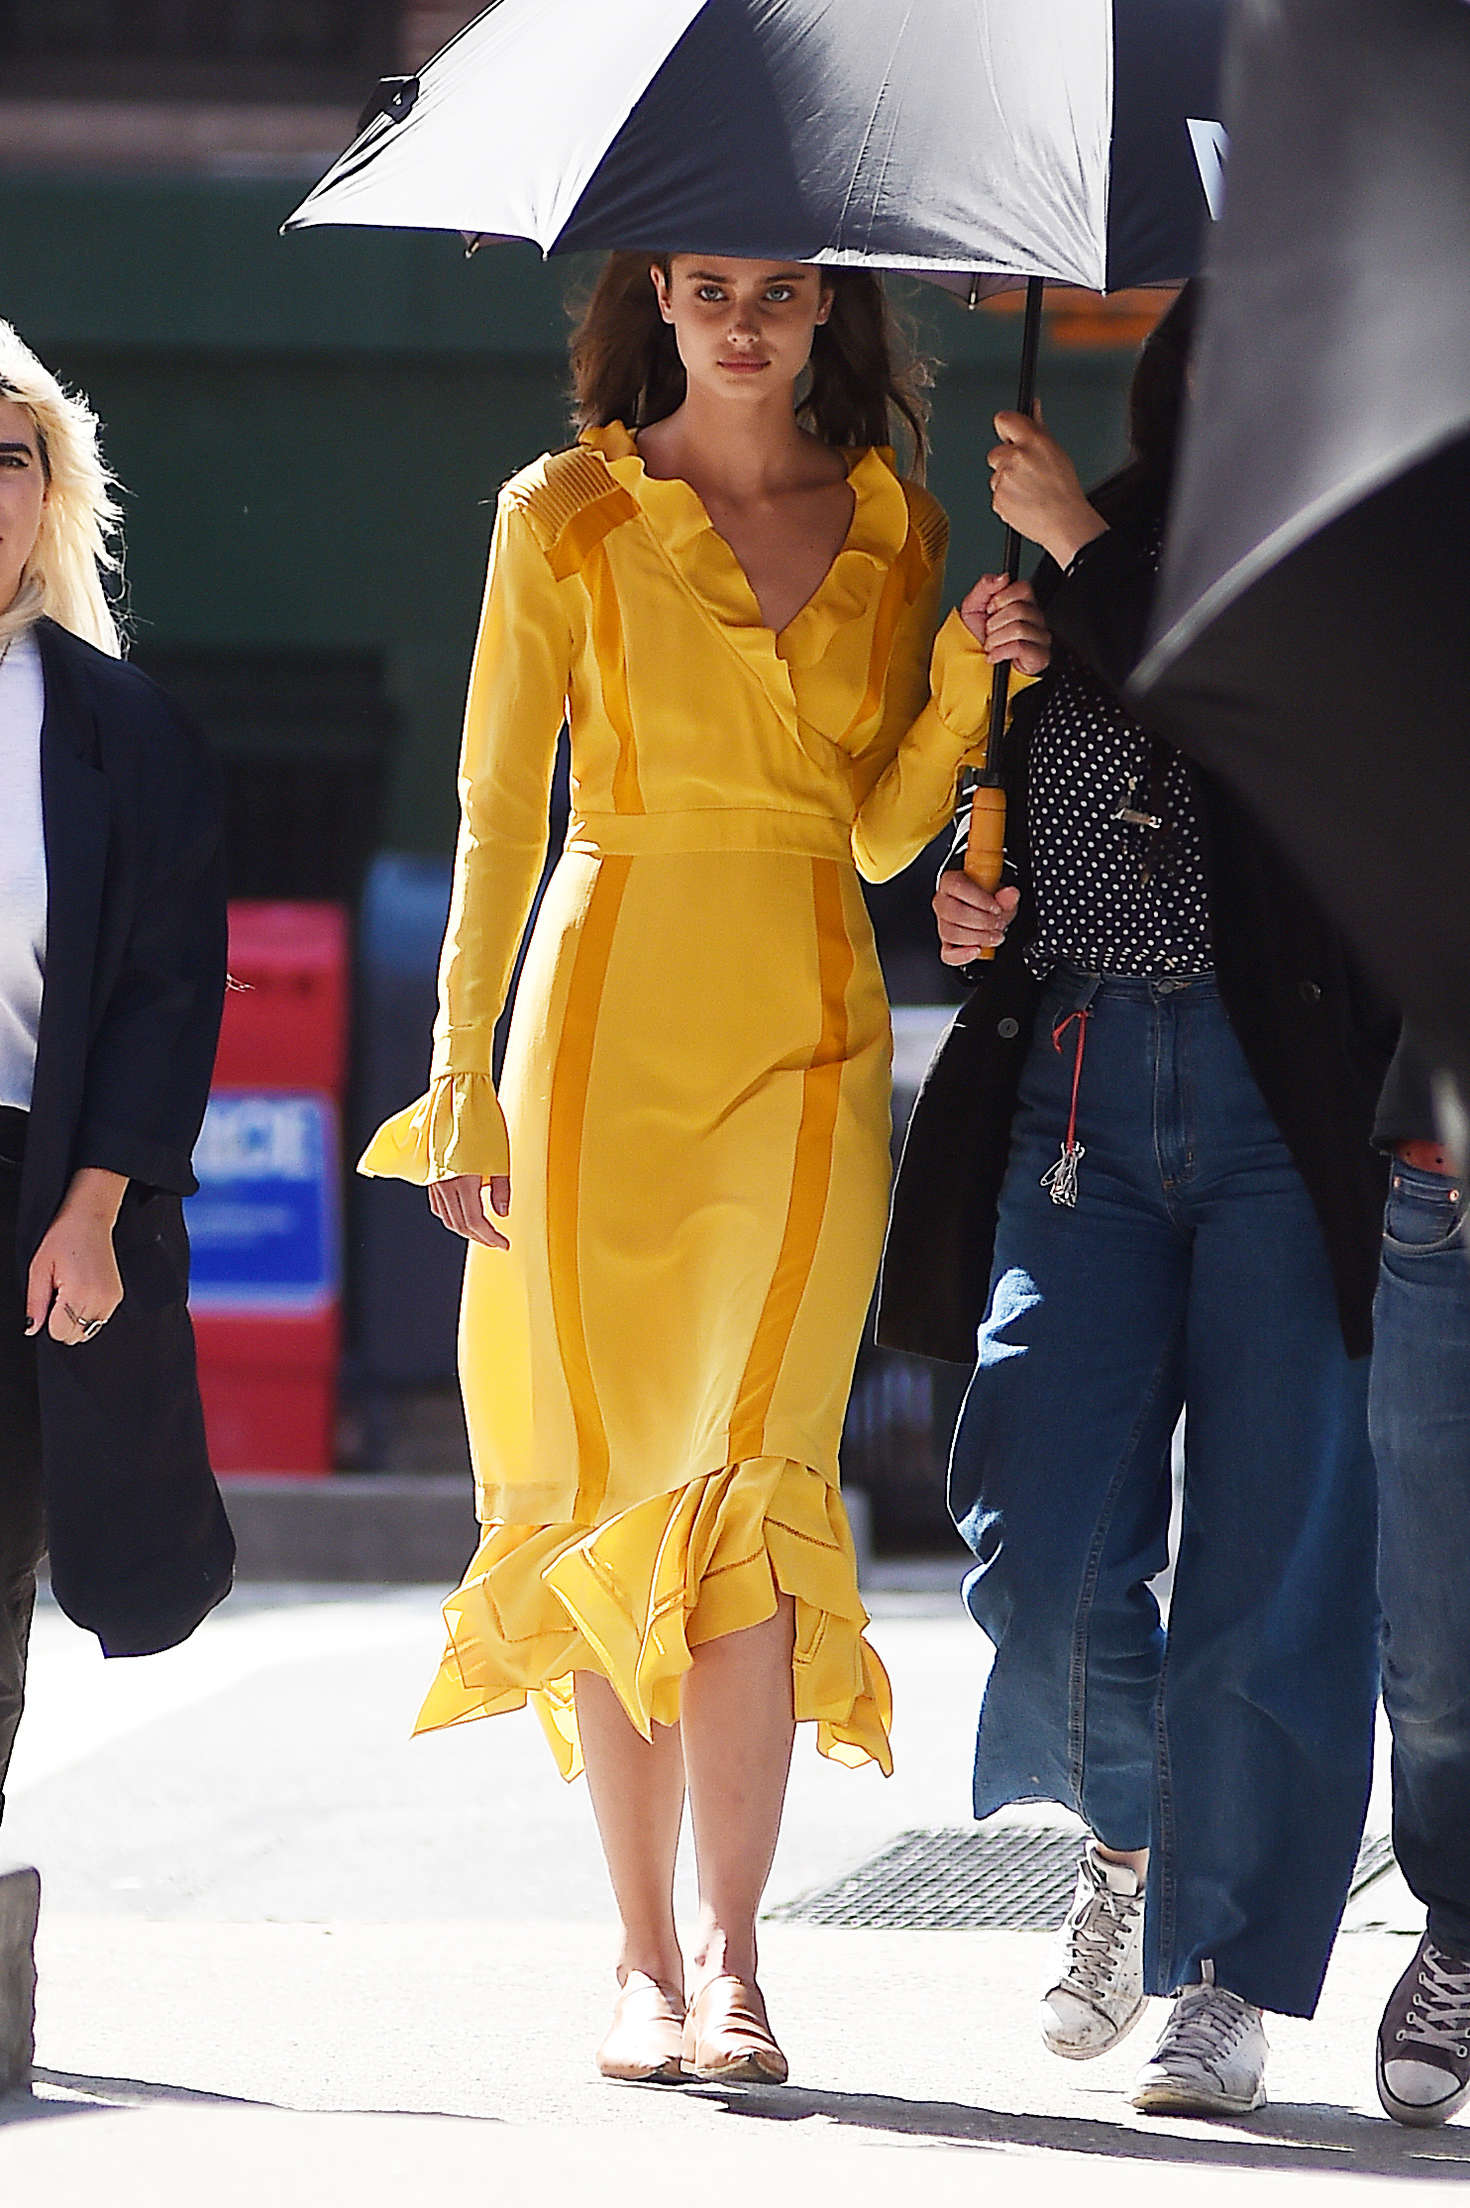 Taylor Marie Hill in Yellow Dress on Photoshoot -22 - GotCeleb